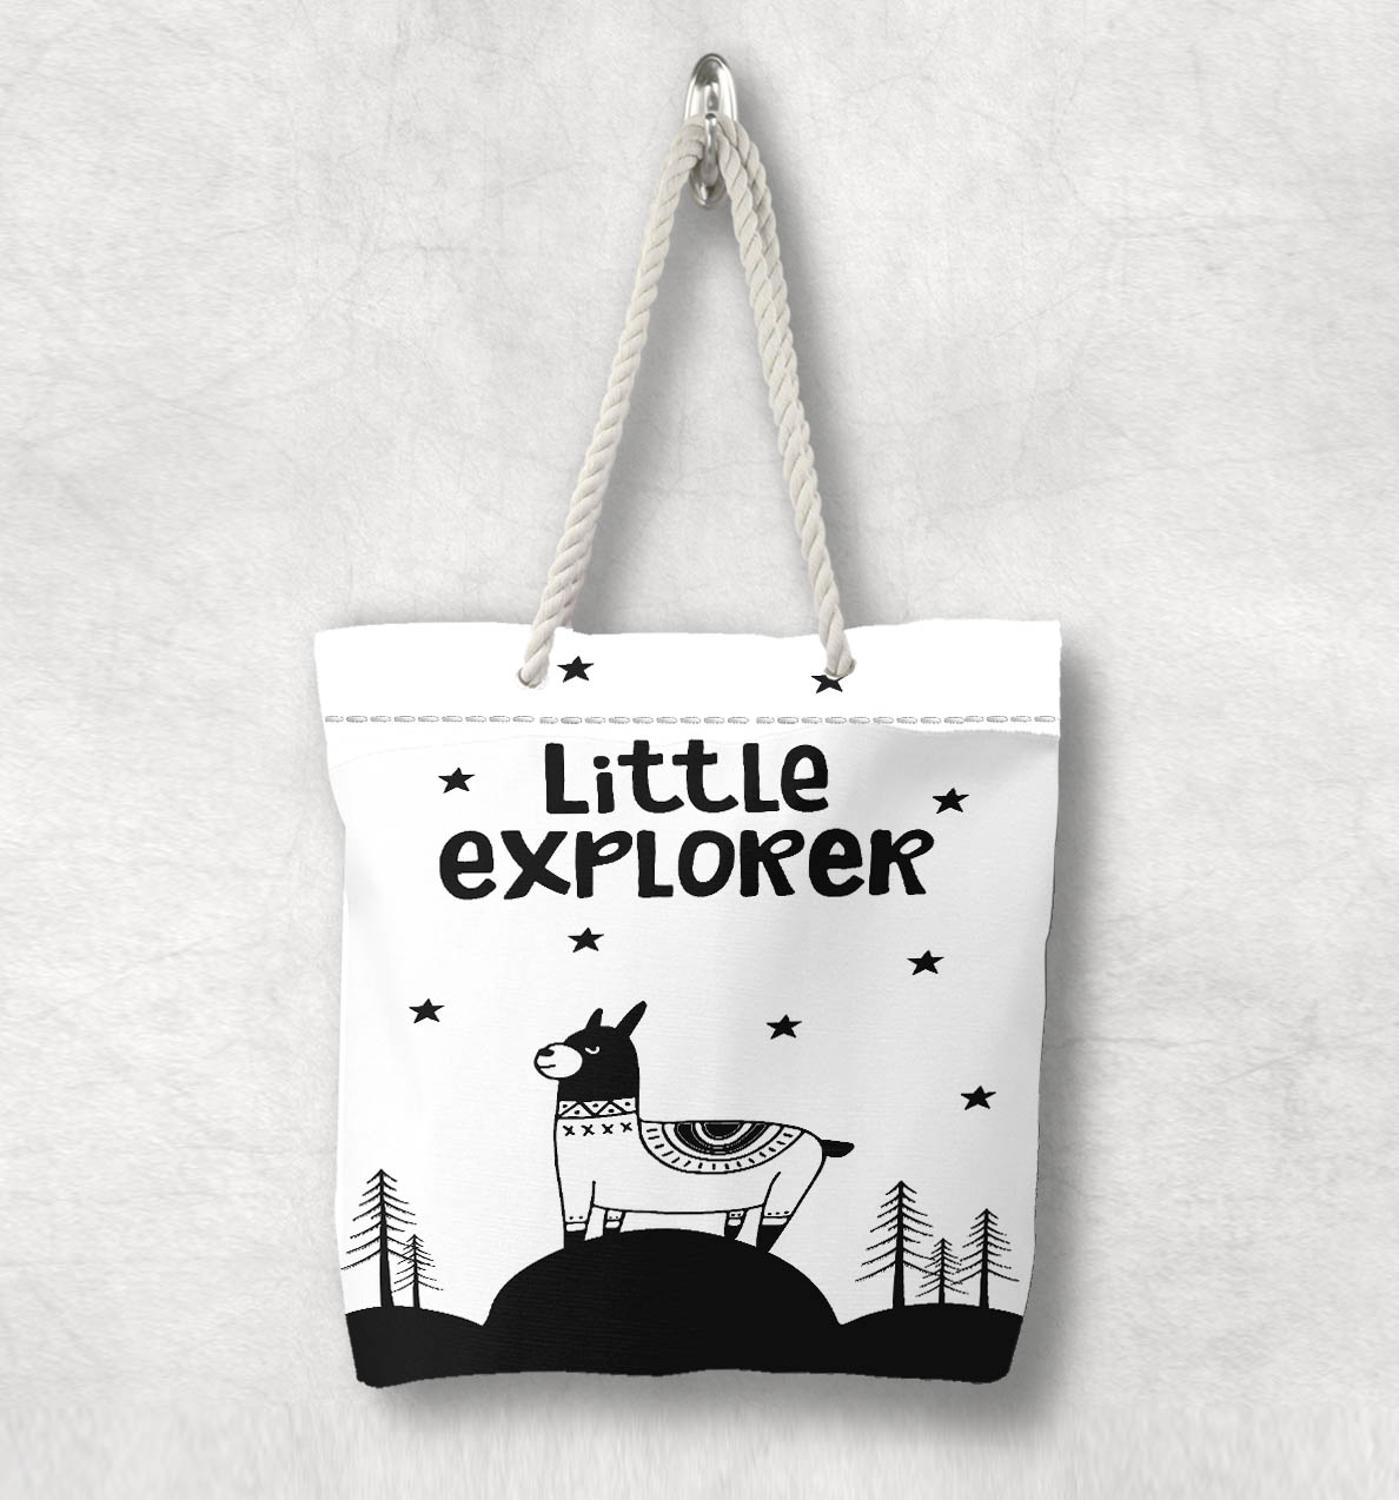 Anders Zwart Wit Lama Little Explorer Scandinavische Wit Touw Handvat Canvas Tas Cartoon Print Ritssluiting Tote Bag Schoudertas